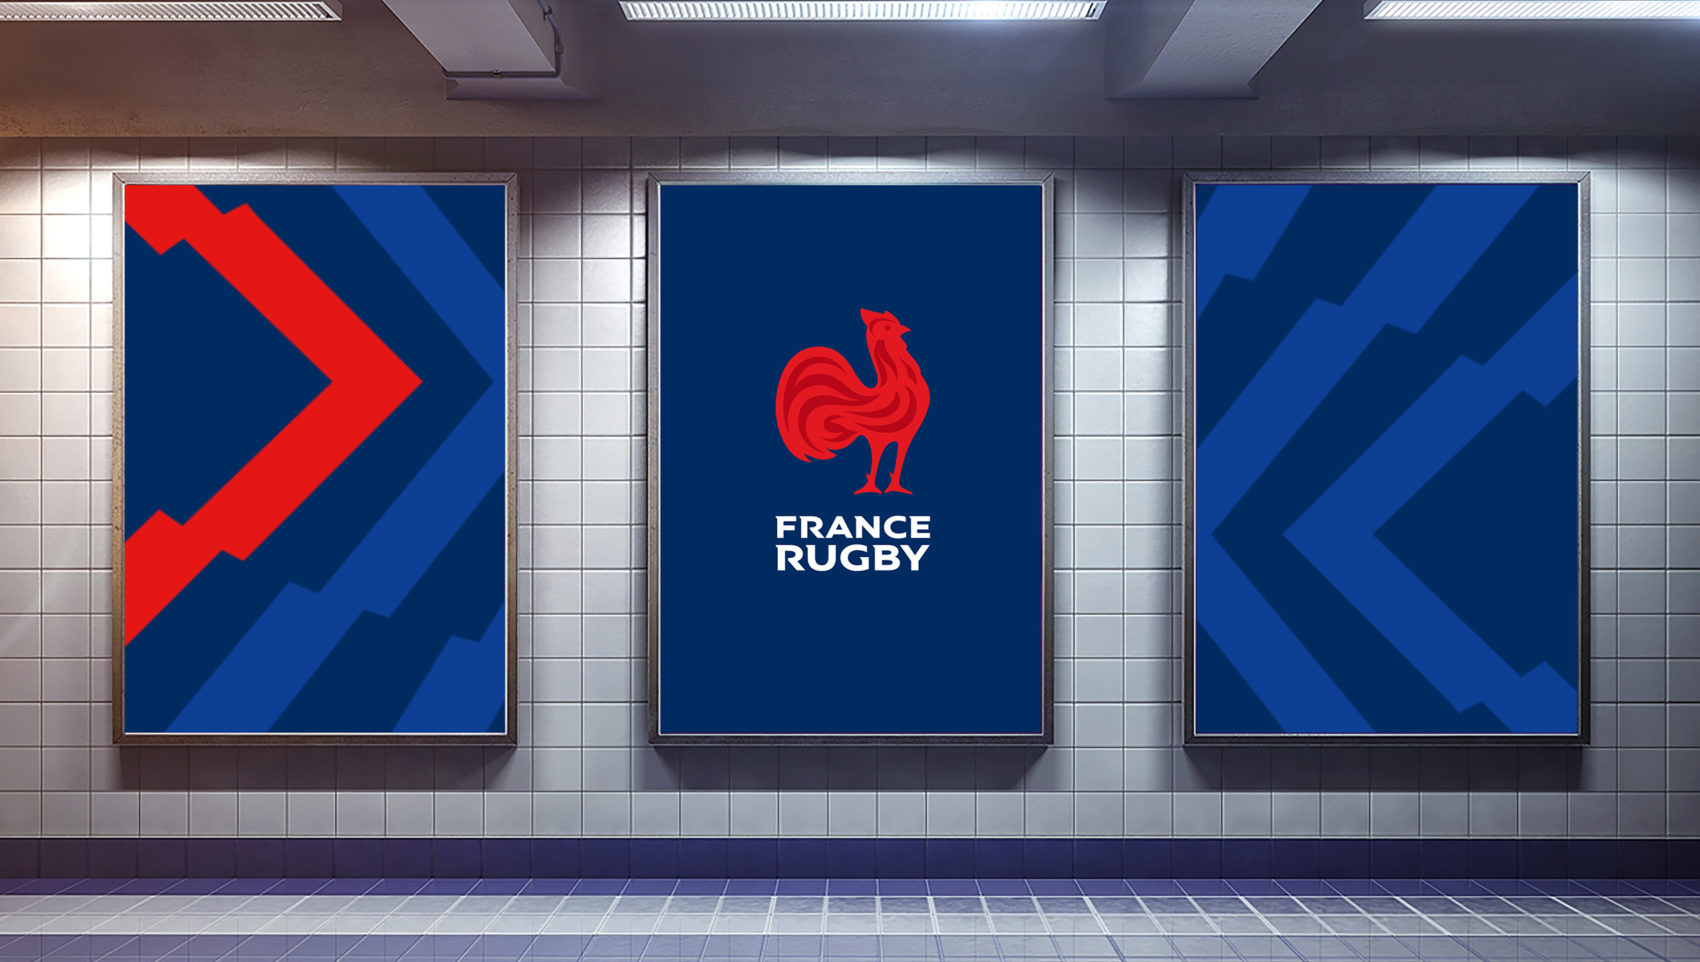 Projet_project_leroy_tremblot_FFR_federation_francaise_rugby_french_nouvelle_identite_new_identity_branding_07